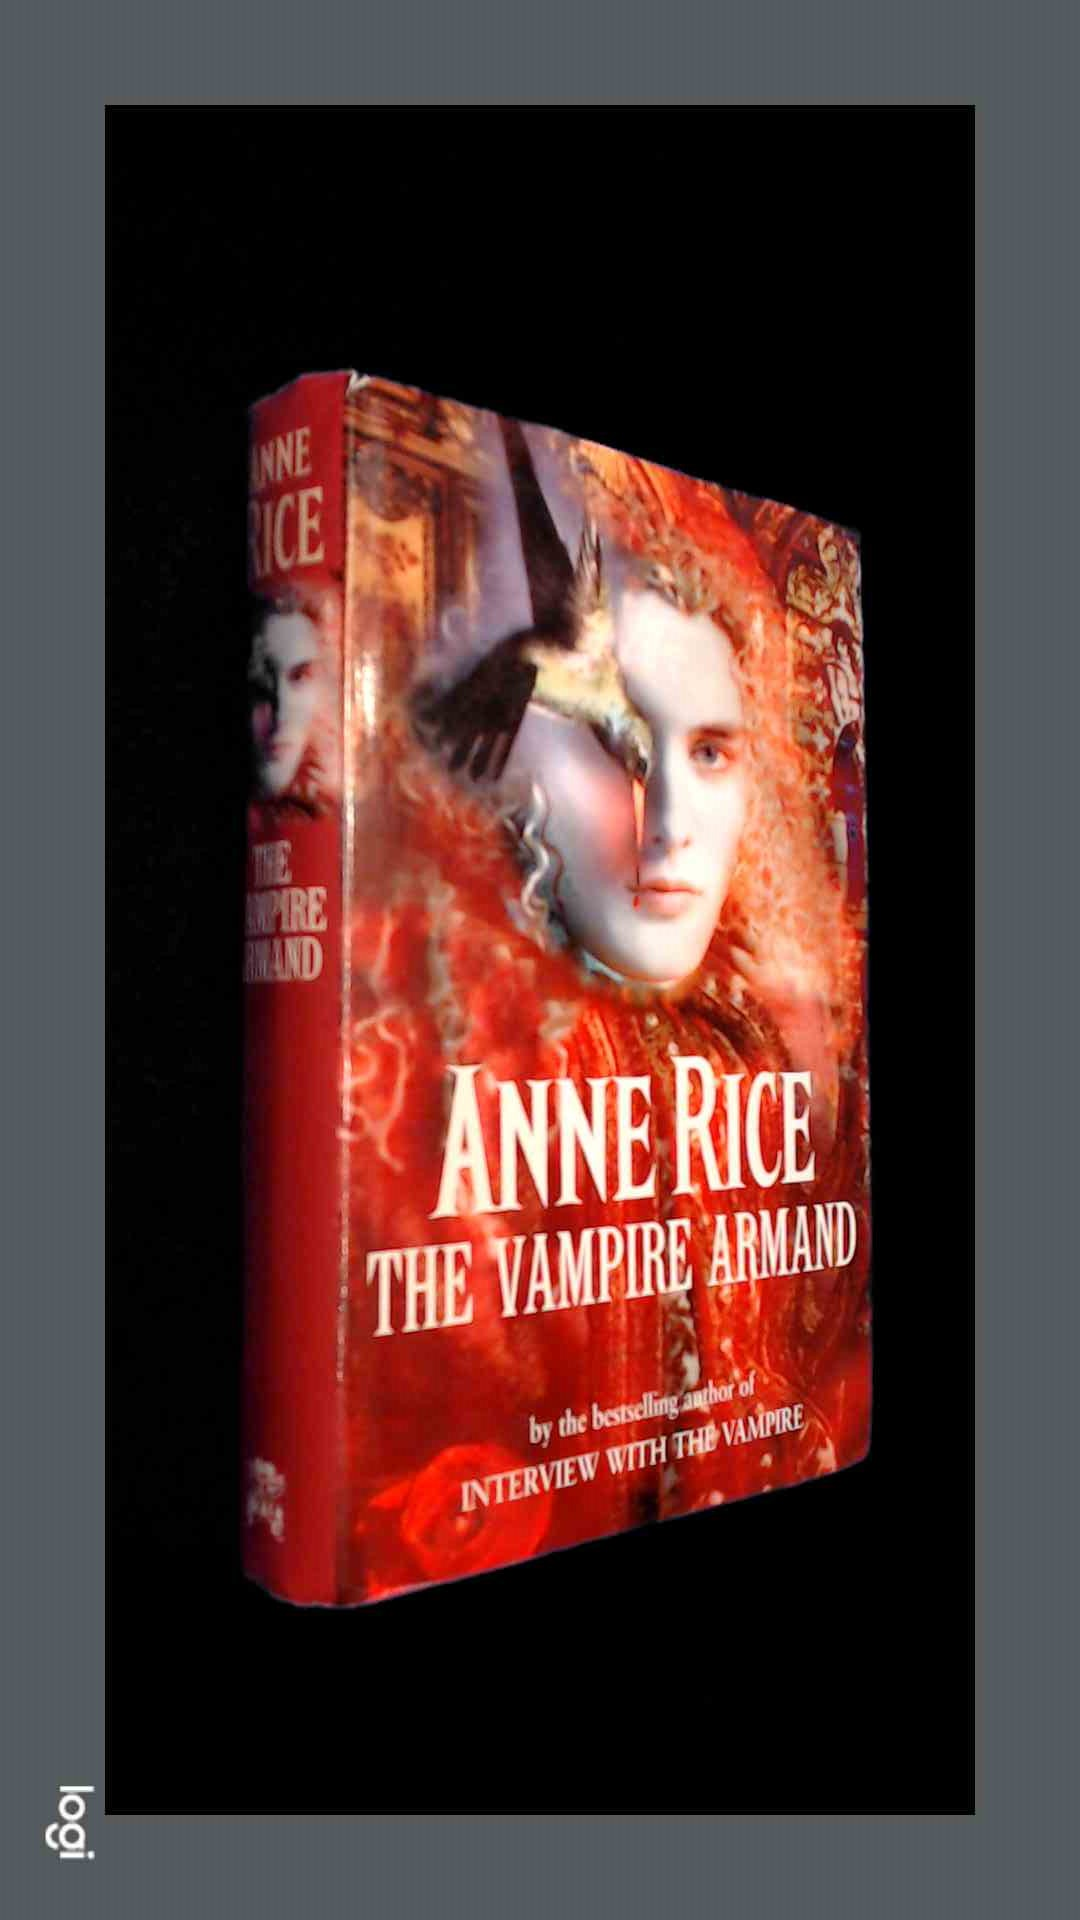 RICE, ANNE - The vampire armand